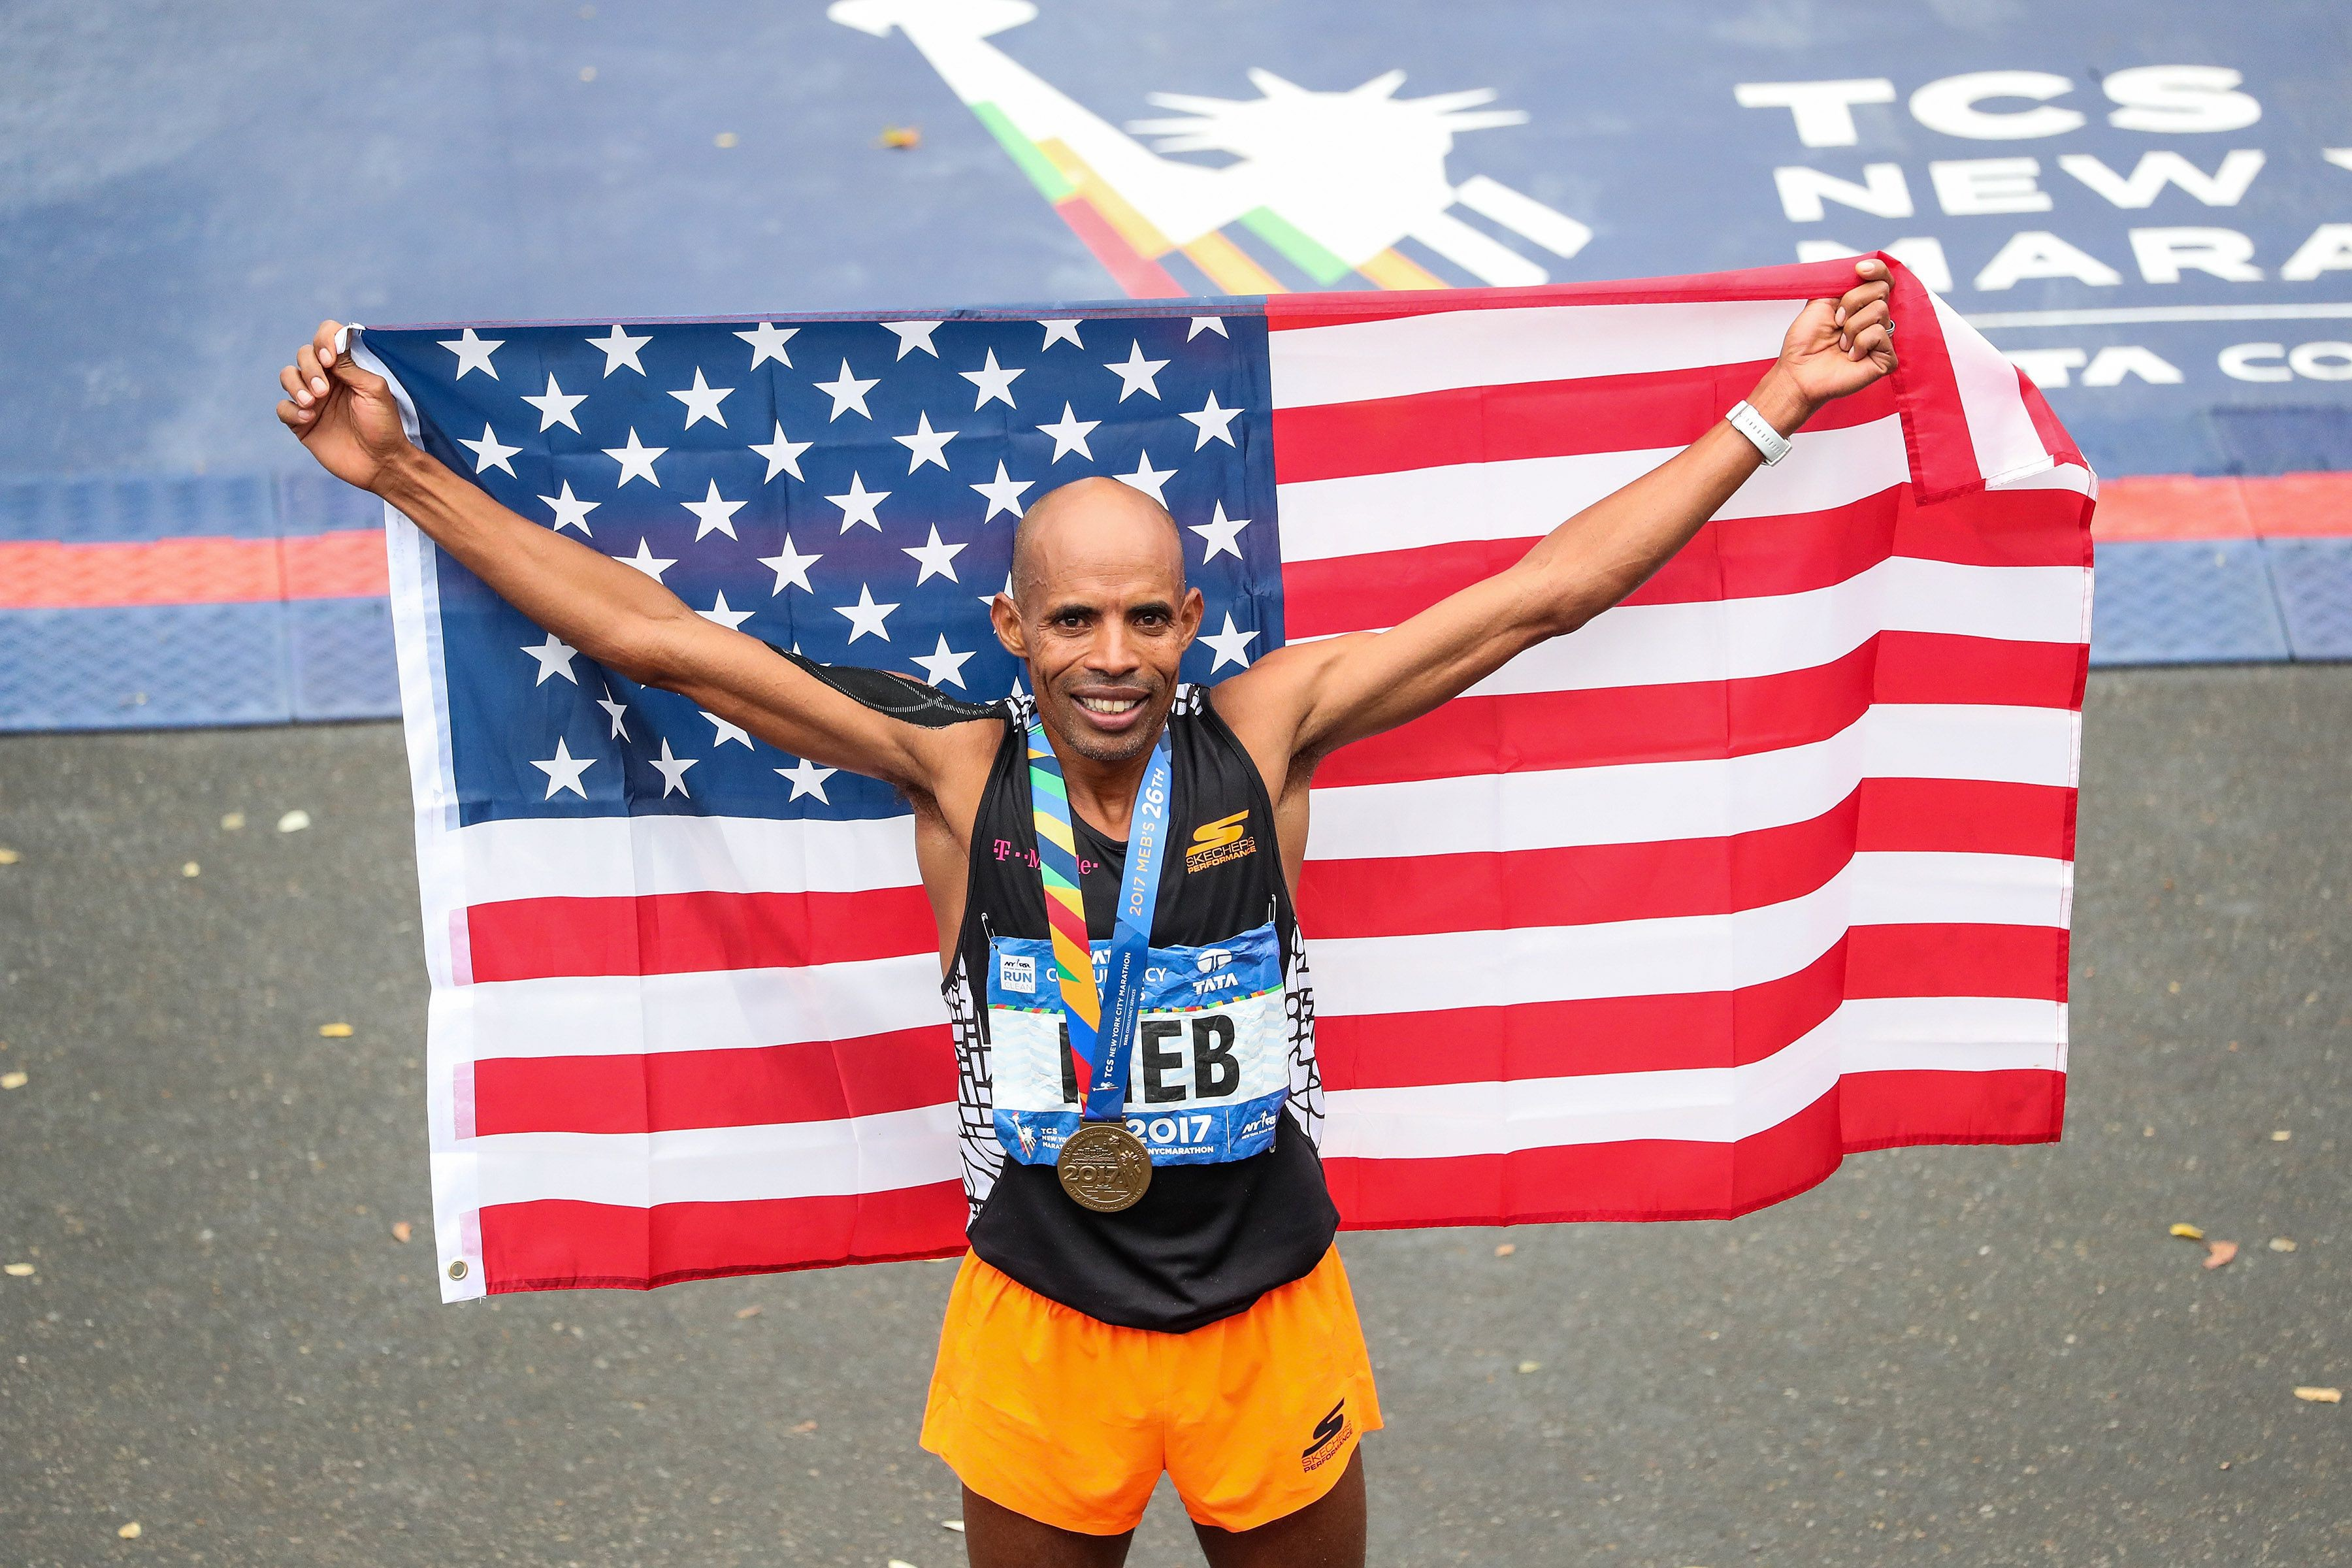 Meb Keflezighi has fond memories of the Carlsbad 5000 and teamed up with a group to purchase it